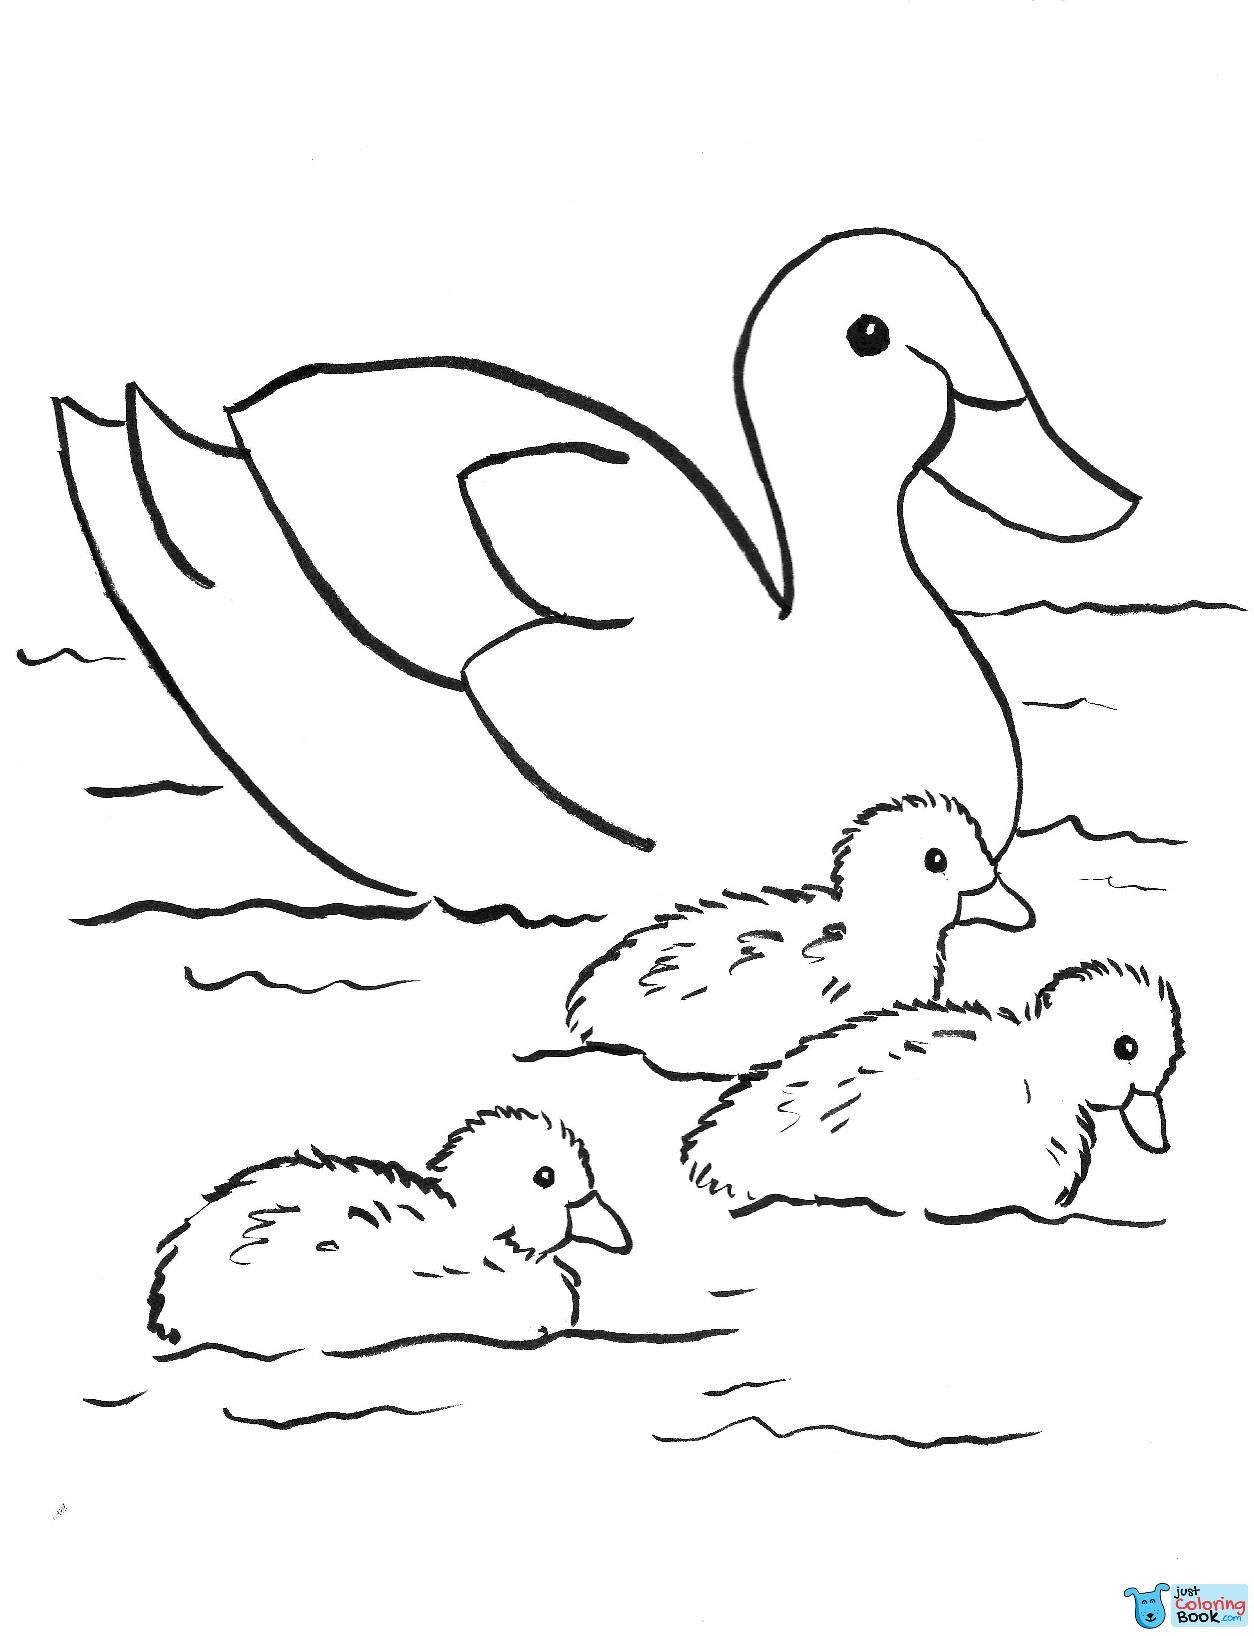 Duck Coloring Games Drpageco Inside Two Mallard Ducks Coloring Pages Family Coloring Pages Bird Coloring Pages Cartoon Coloring Pages